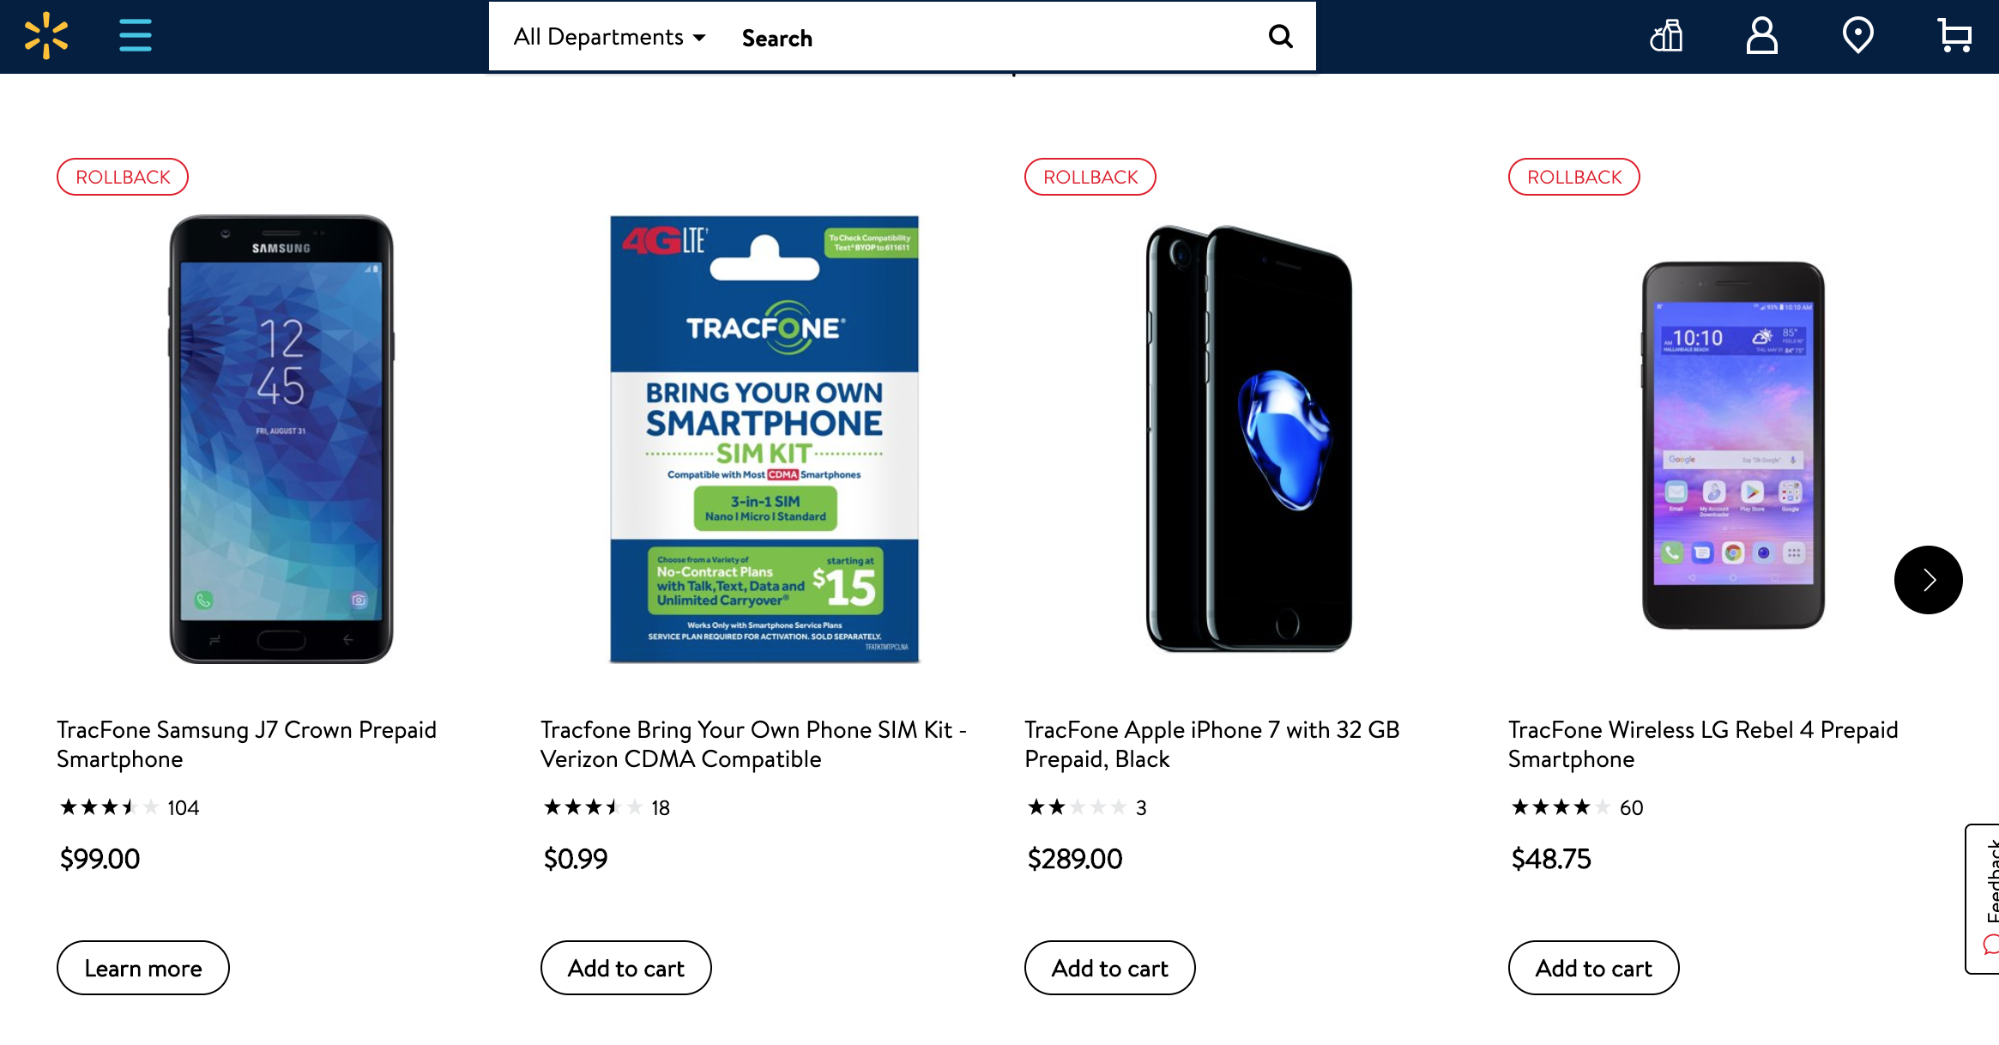 Trickut Mint mobile - Tracfone Purchase Options Available at Walmart - walmart - Deals Product Reviews Coupons